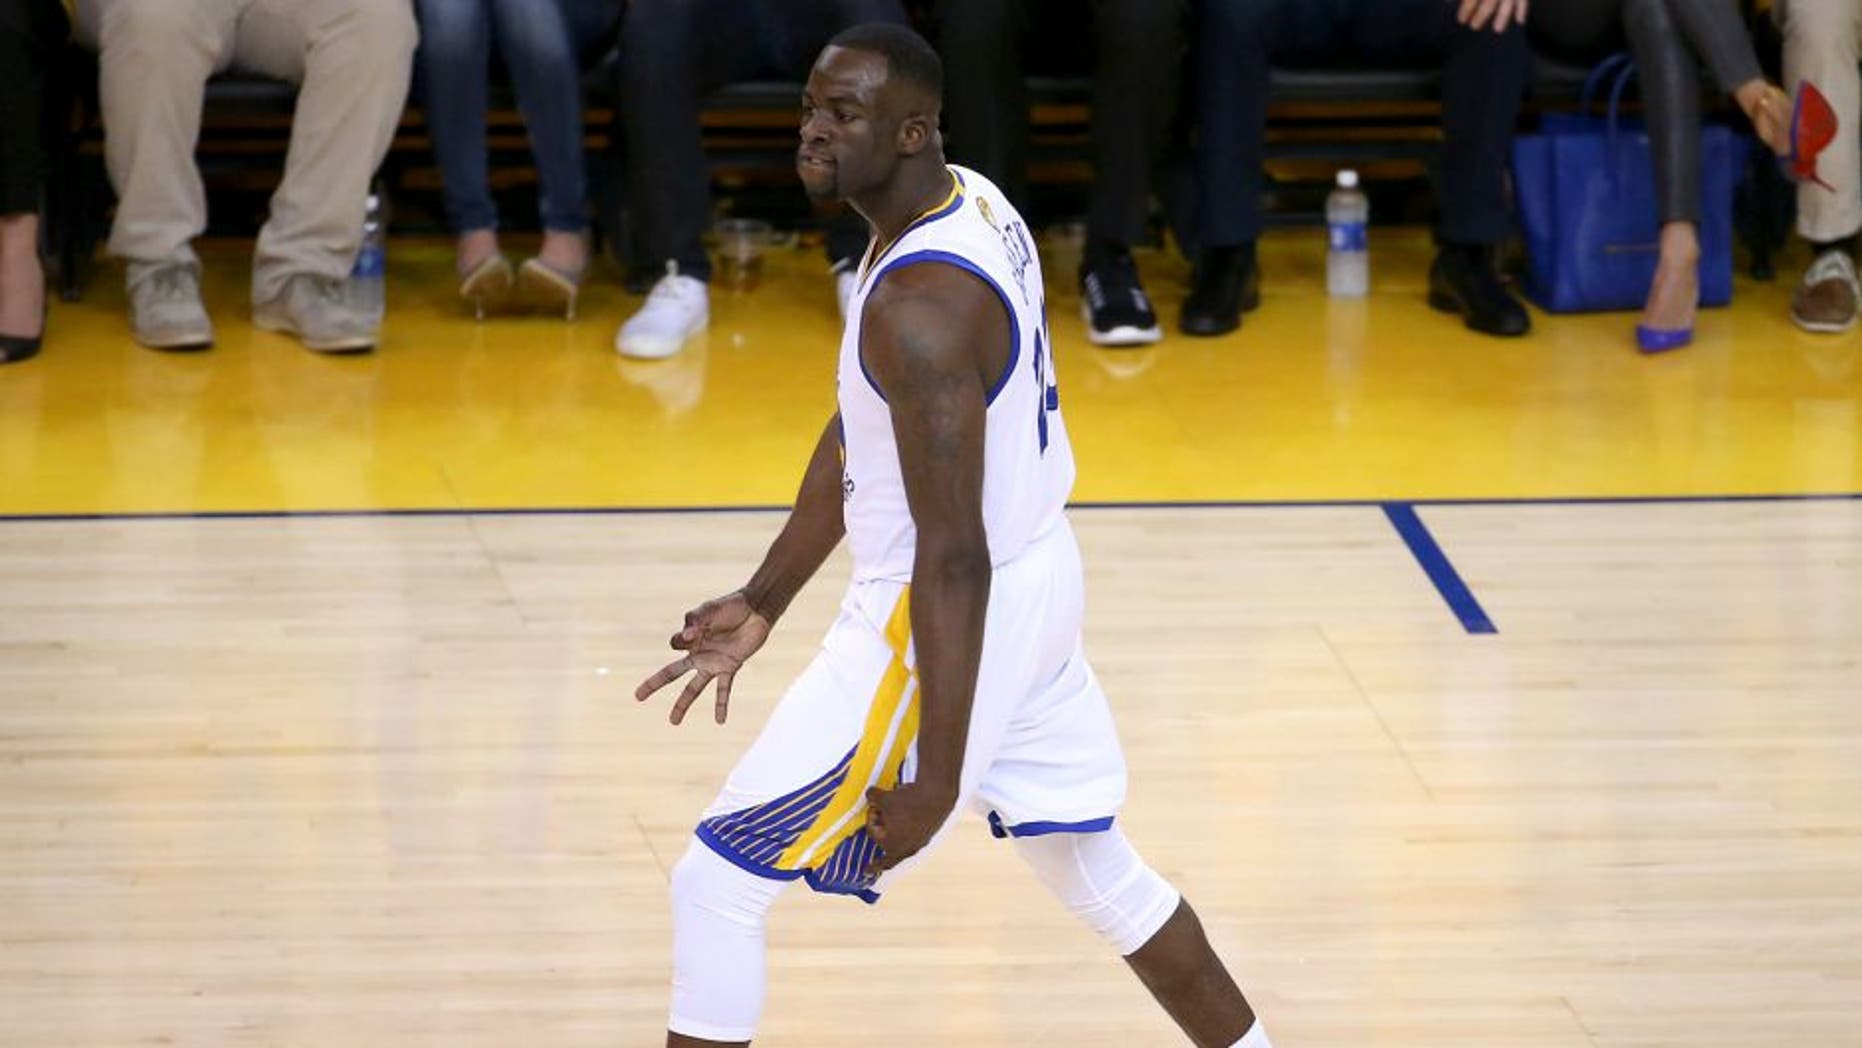 Jun 14, 2015; Oakland, CA, USA; Golden State Warriors forward Draymond Green (23) reacts after a three pointer during the first quarter against the Cleveland Cavaliers in game five of the NBA Finals at Oracle Arena. Mandatory Credit: Kelley L Cox-USA TODAY Sports